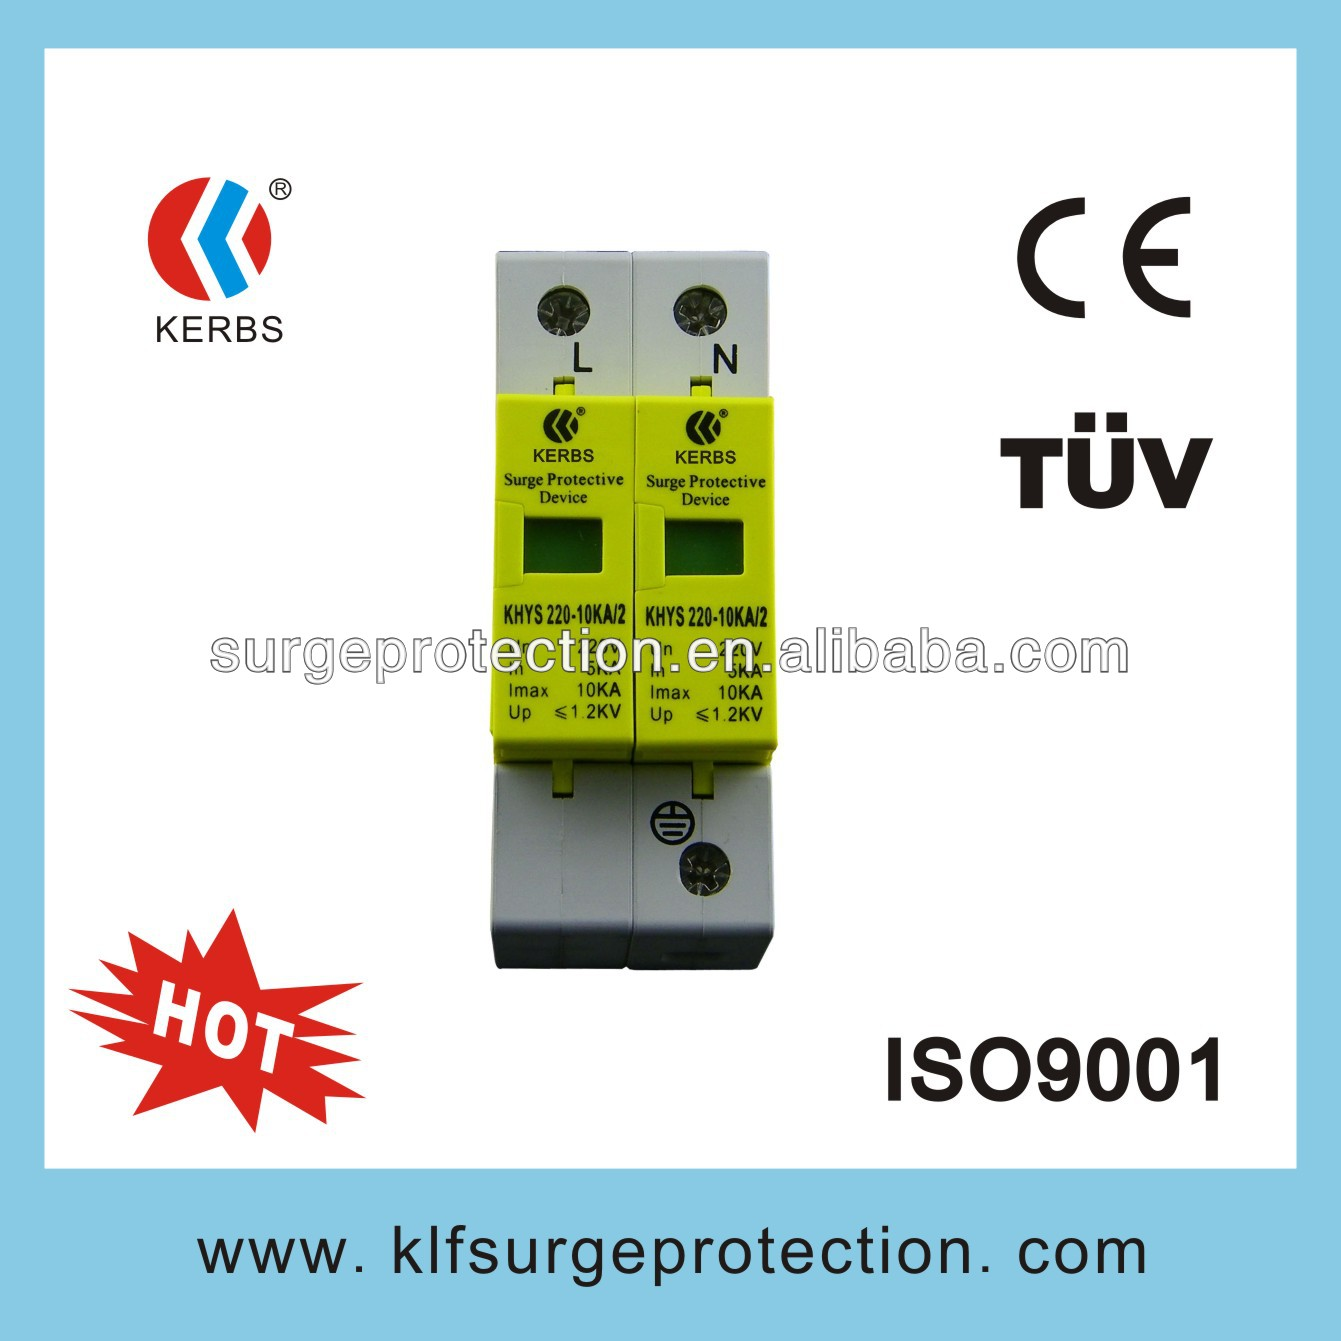 220V,10KA Power surge arrestor protect LED lights